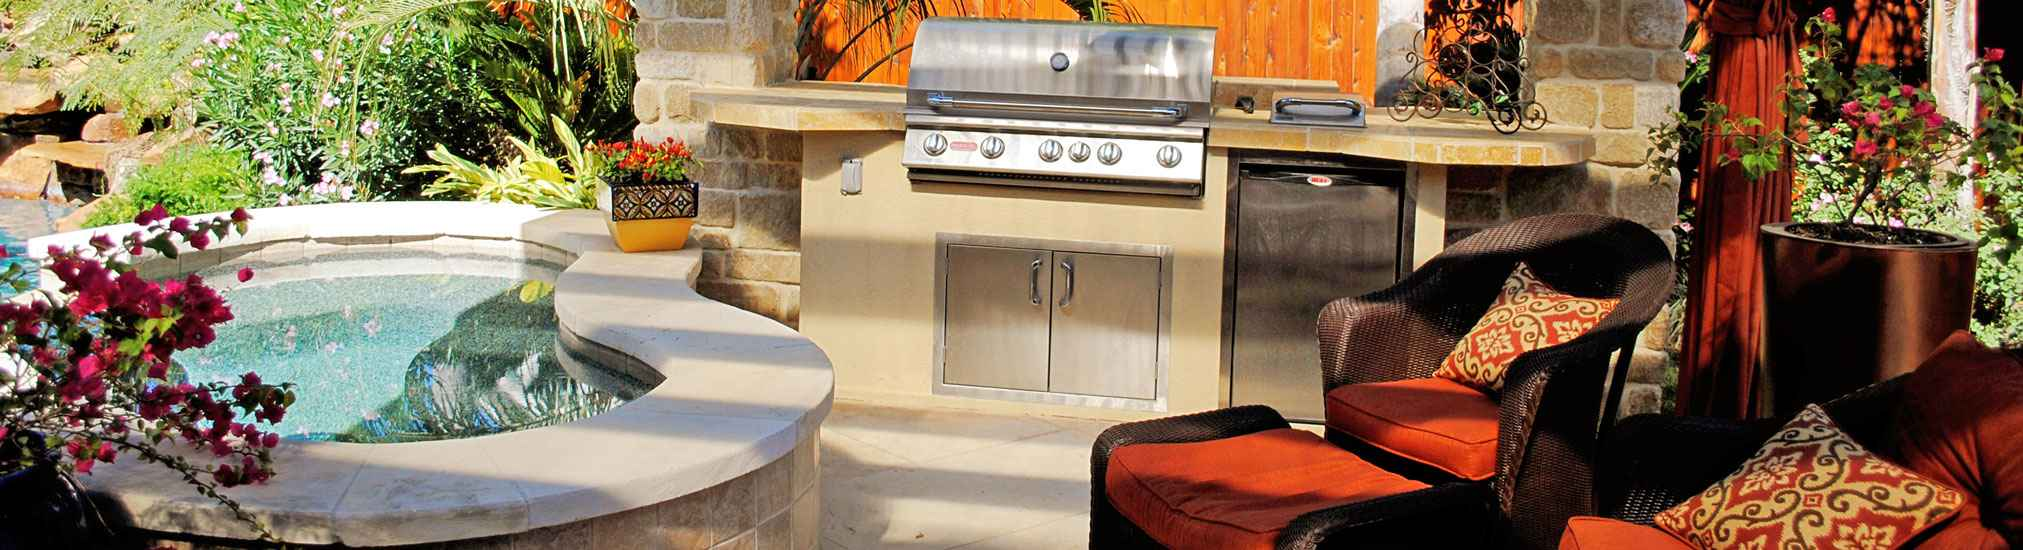 Katy Landscape and Outdoor Kitchen Photo